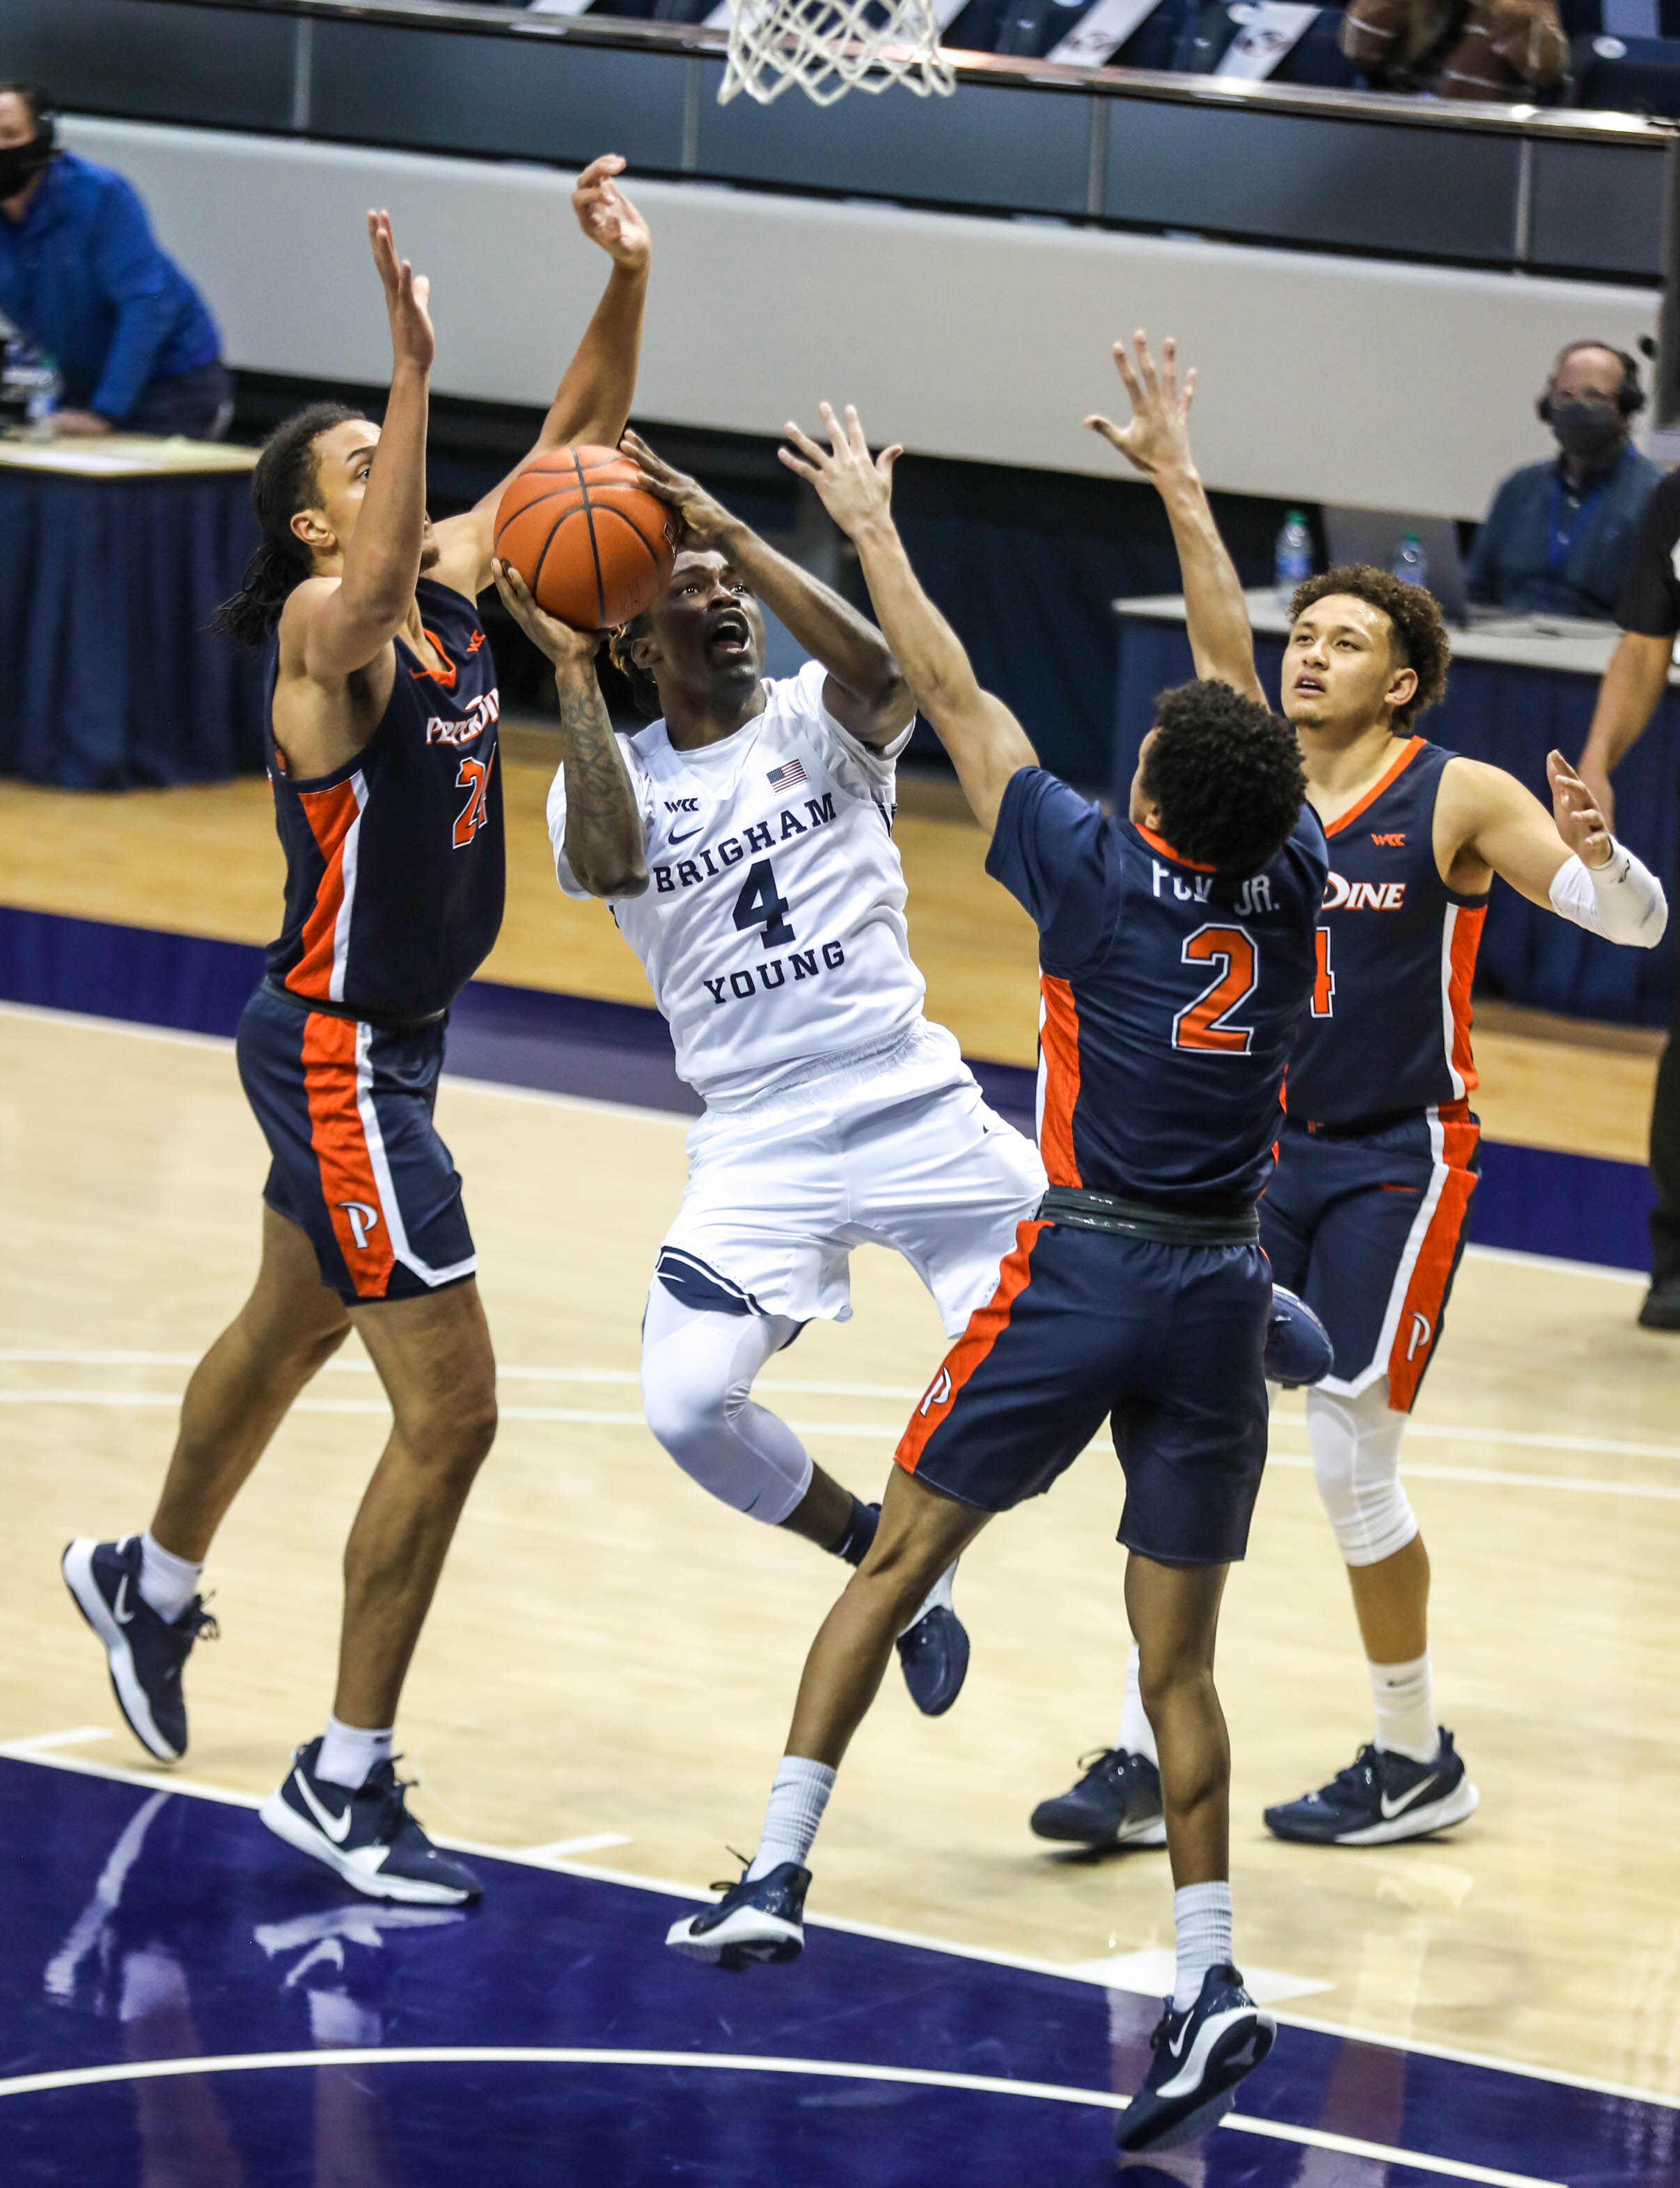 Brigham Young Cougars guard Brandon Averette (4) gets ready to shoot over the Pepperdine Waves at the Marriott Center in Provo on Saturday, Jan. 23, 2021.